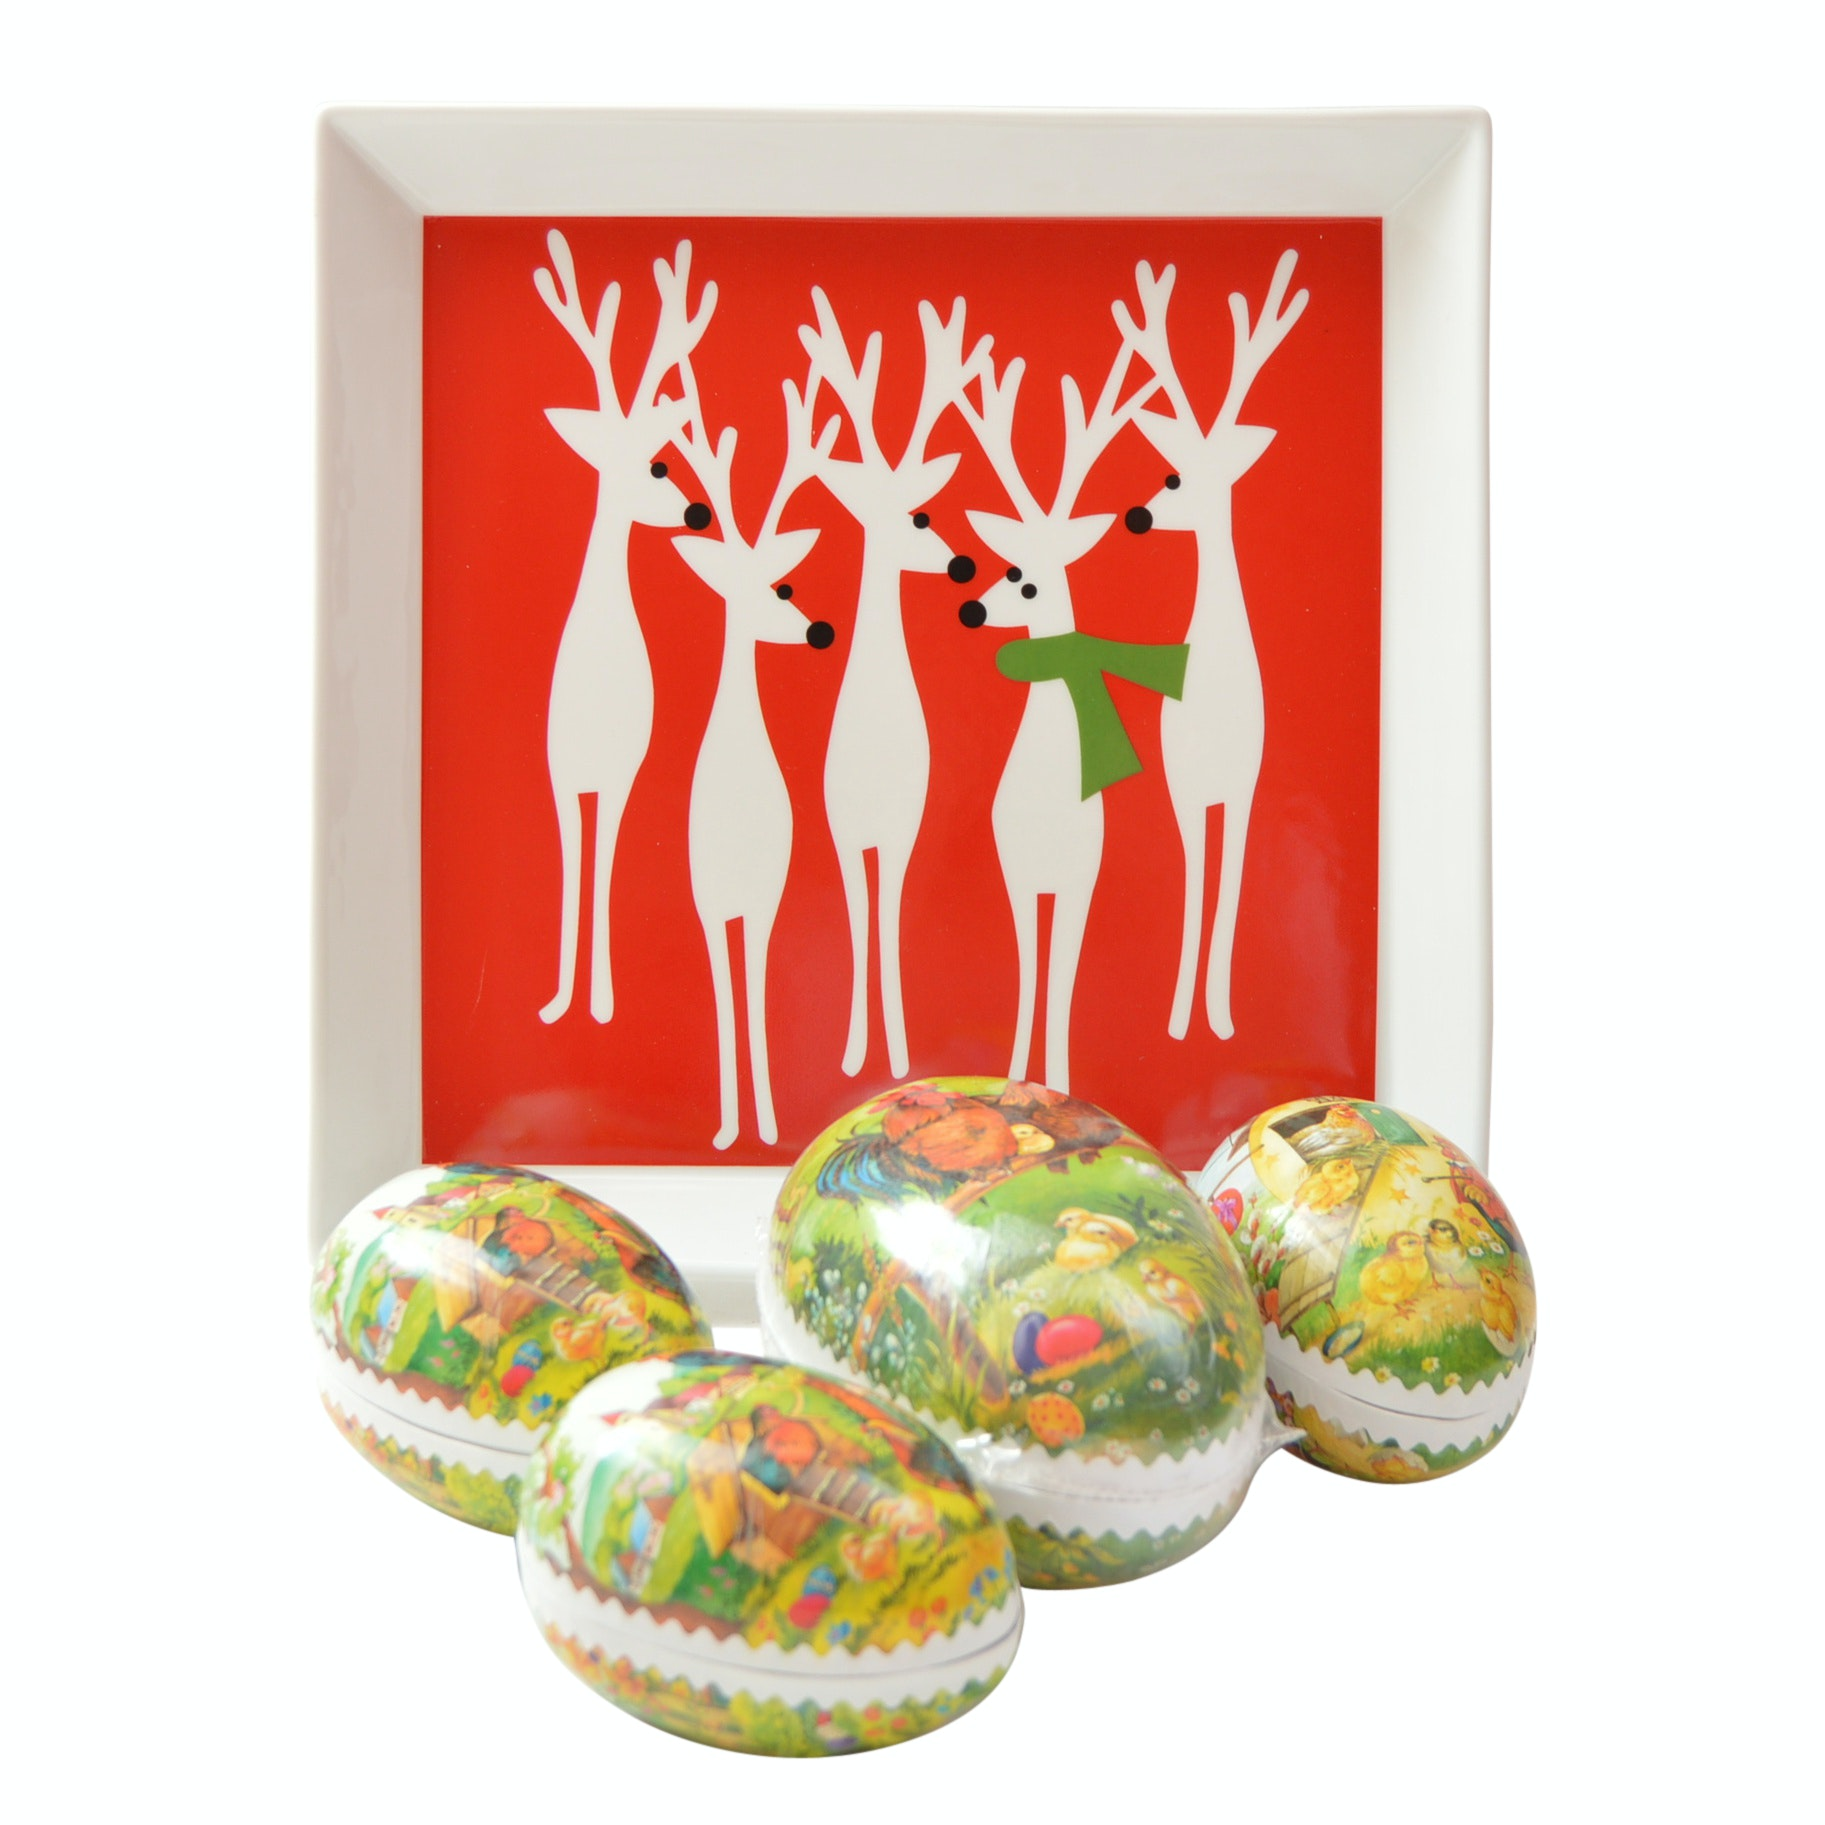 Crate & Barrel Holiday Plate and German Papier-Mâché Easter Eggs